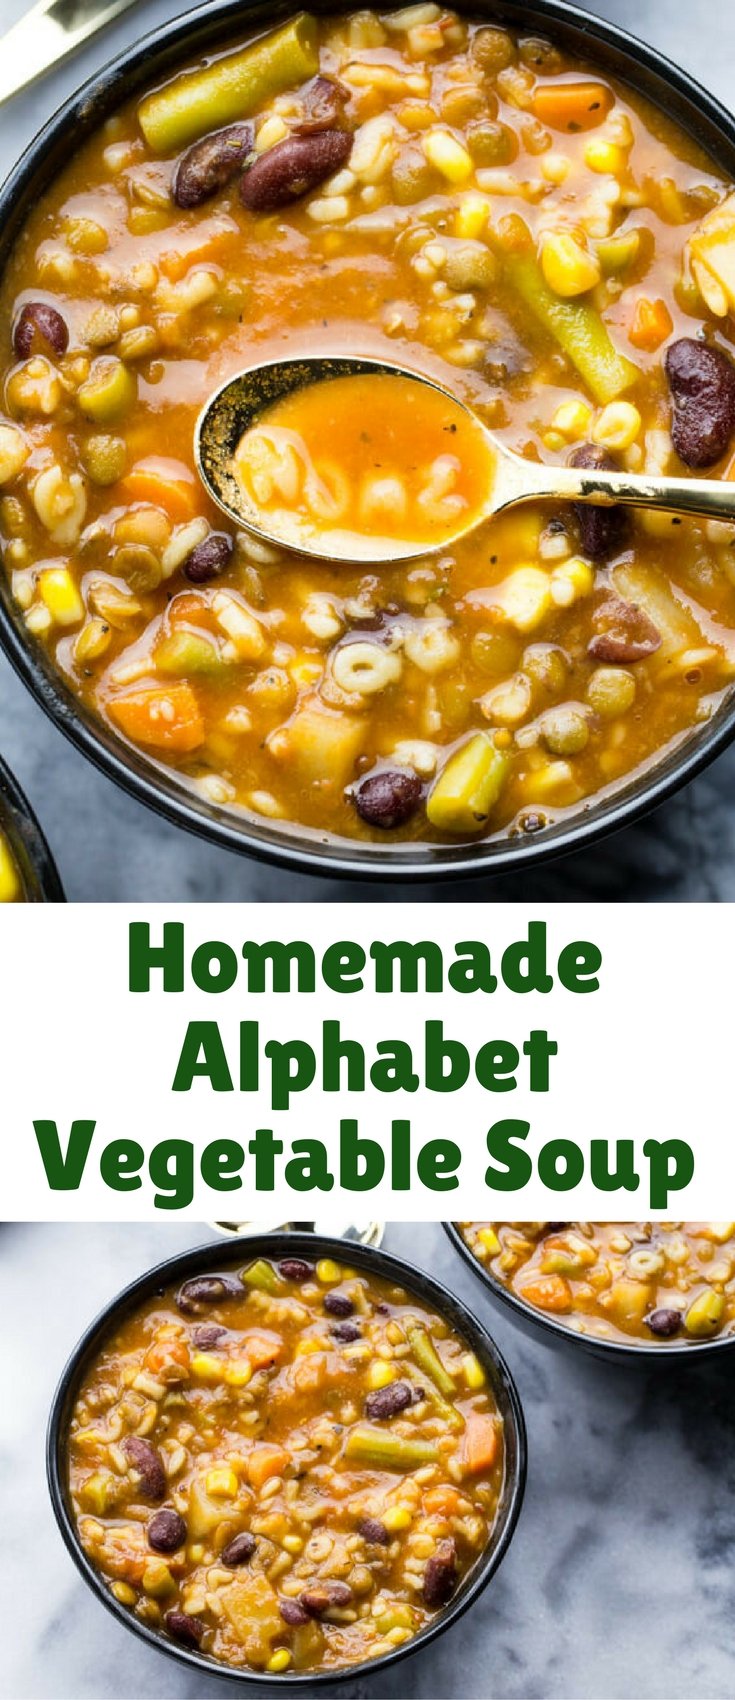 This Homemade Alphabet Vegetable Soup is a hearty, delicious spin on your favorite canned soup and is ready in just 30 minutes. It's also freezer-friendly for quick weeknight meals!